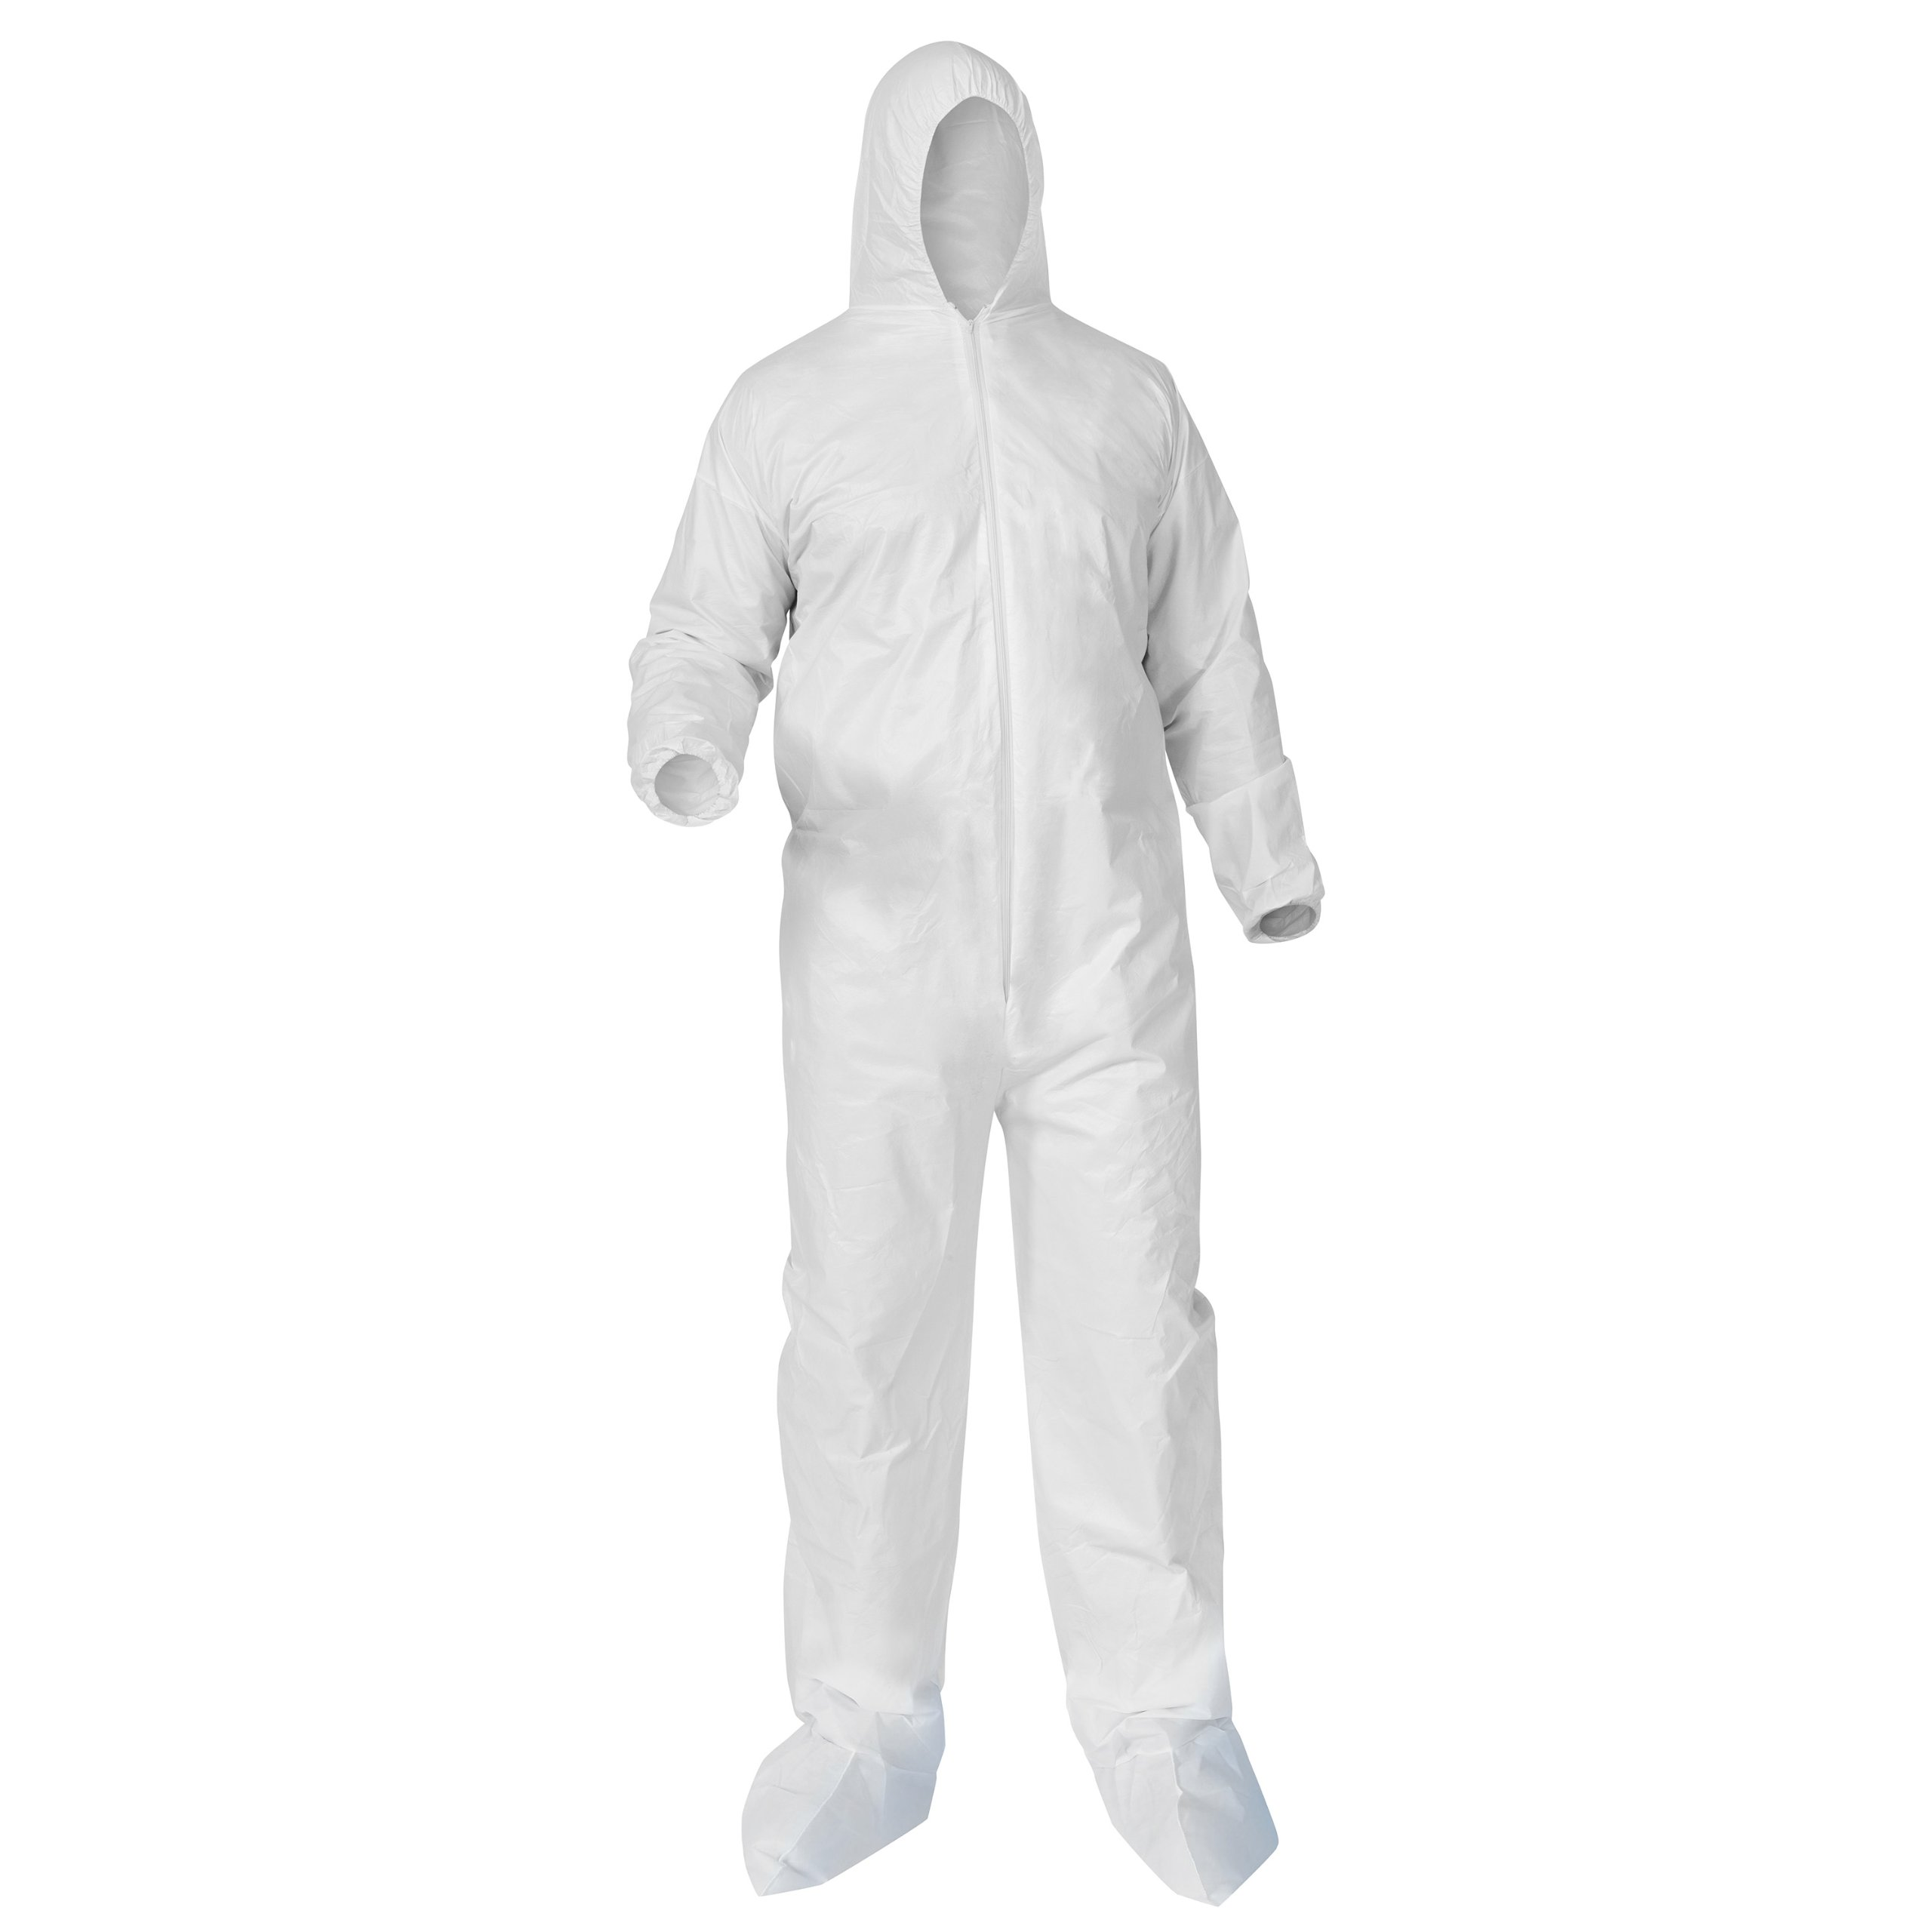 Kimberly-Clark 38948 KleenGuard A35 Liquid and Particle Protection Coverall with Elastic Wrists and Ankles, Hooded, Booted, Disposable, White (Pack of 25)